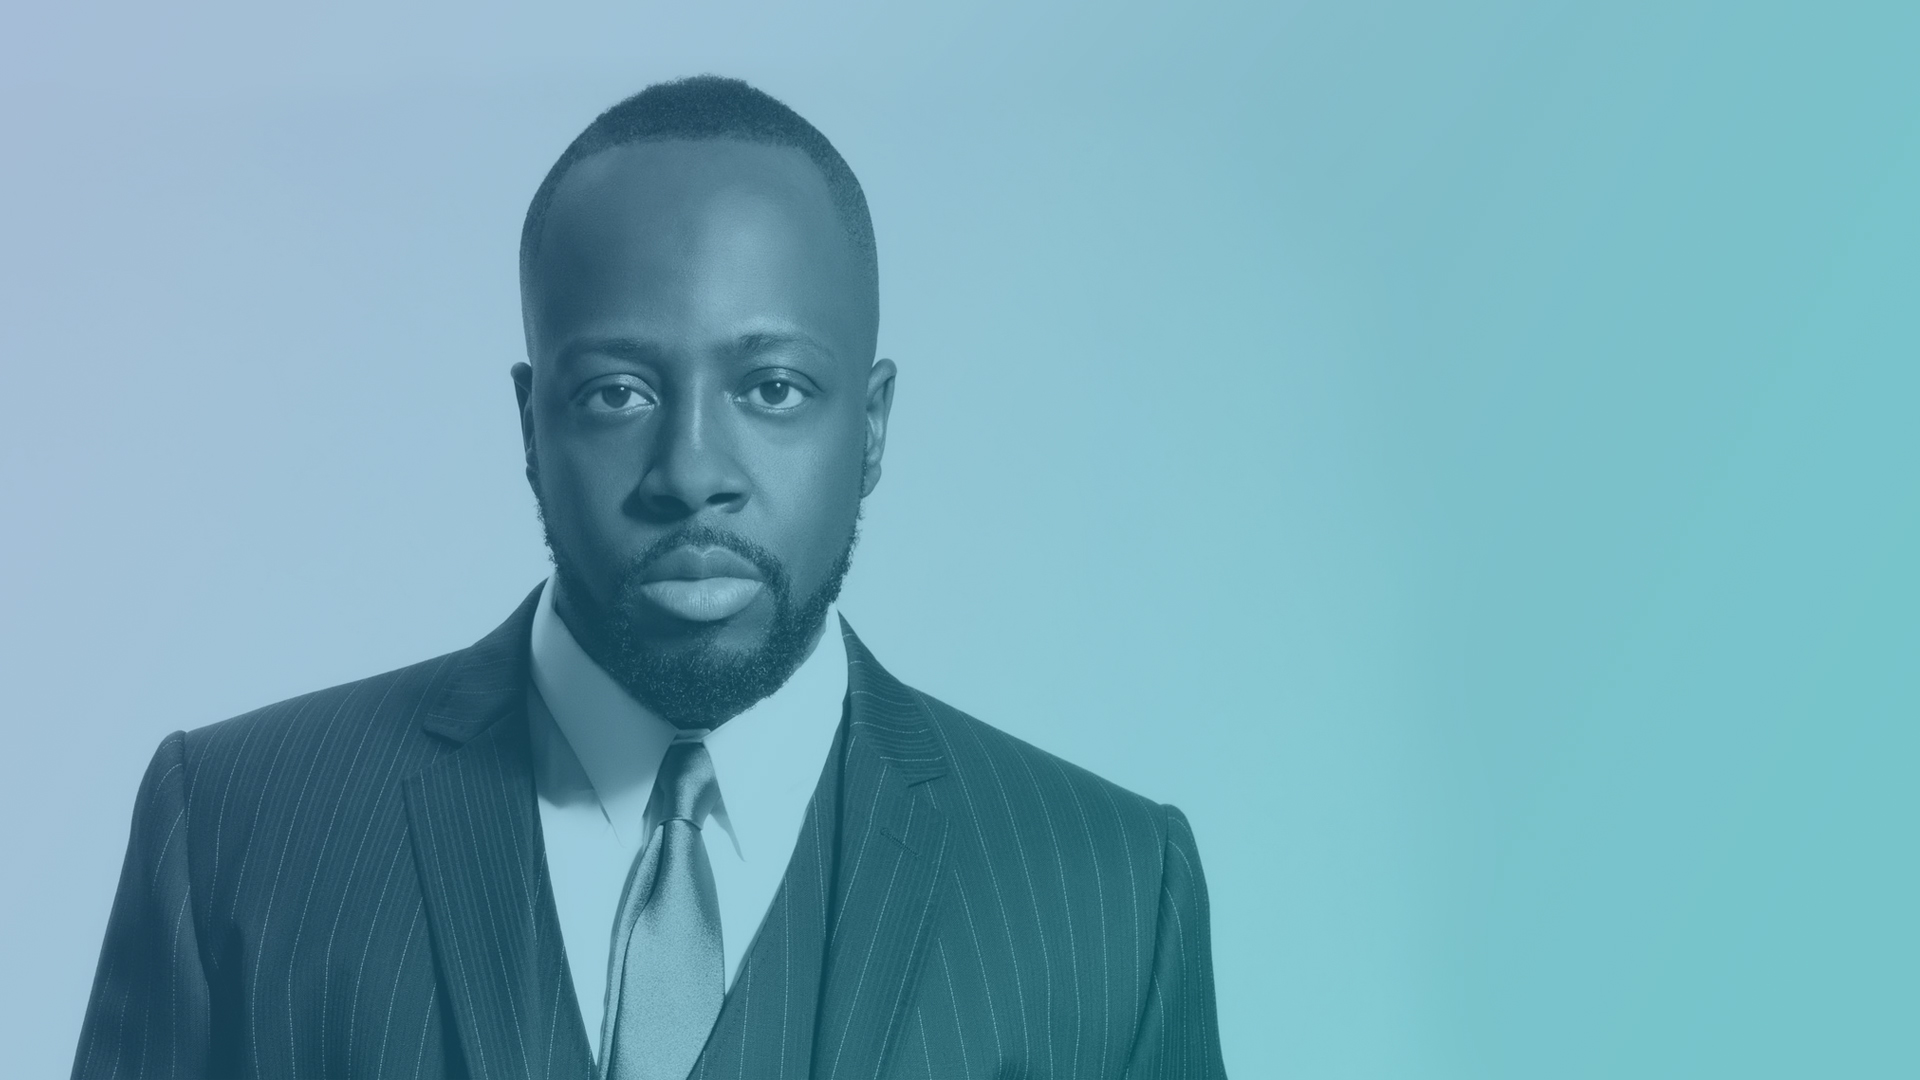 Breakfast with Wyclef